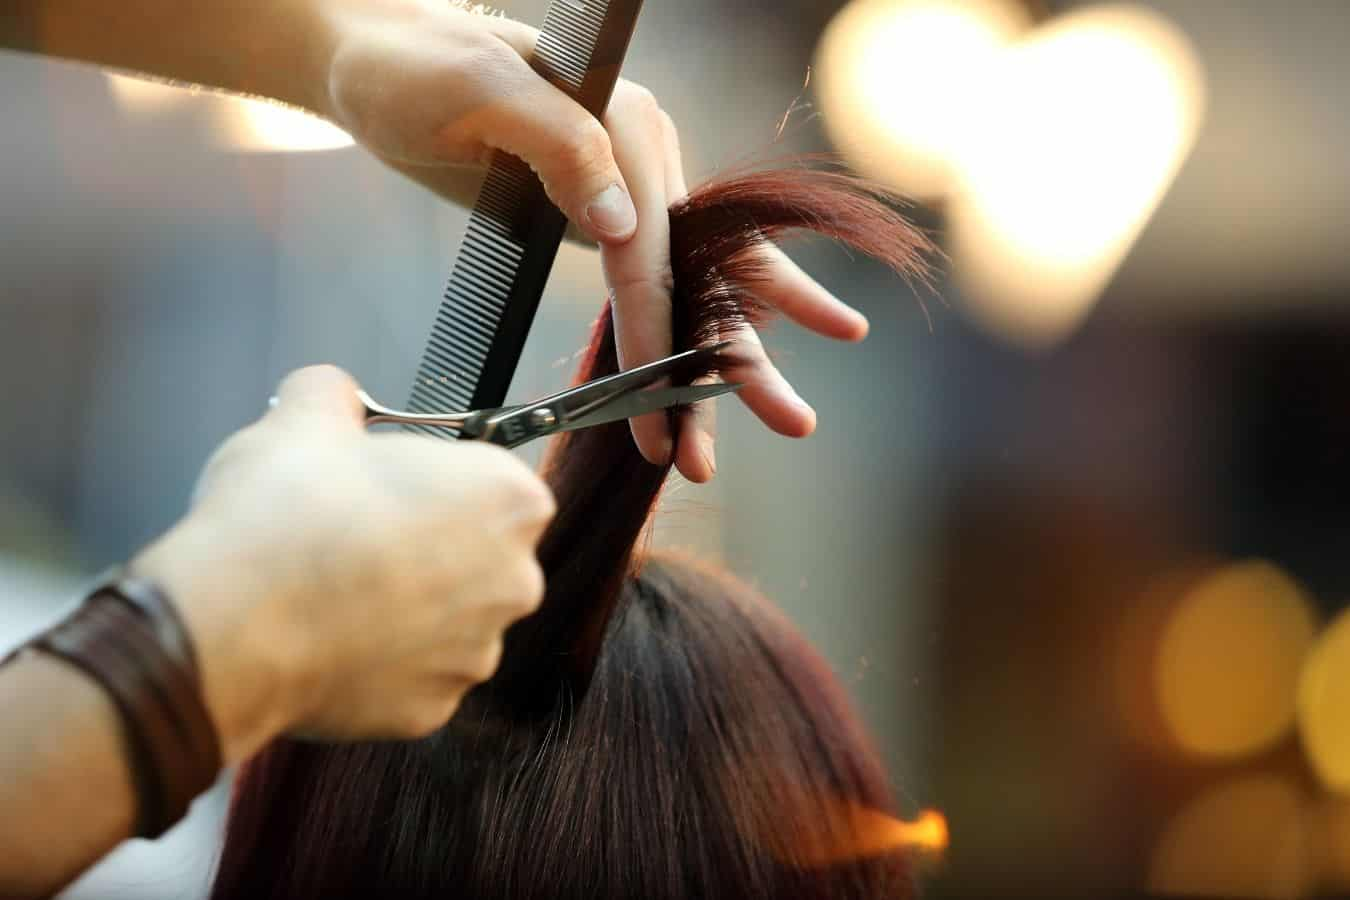 How To Pick A Good Barber vs Hair Stylist